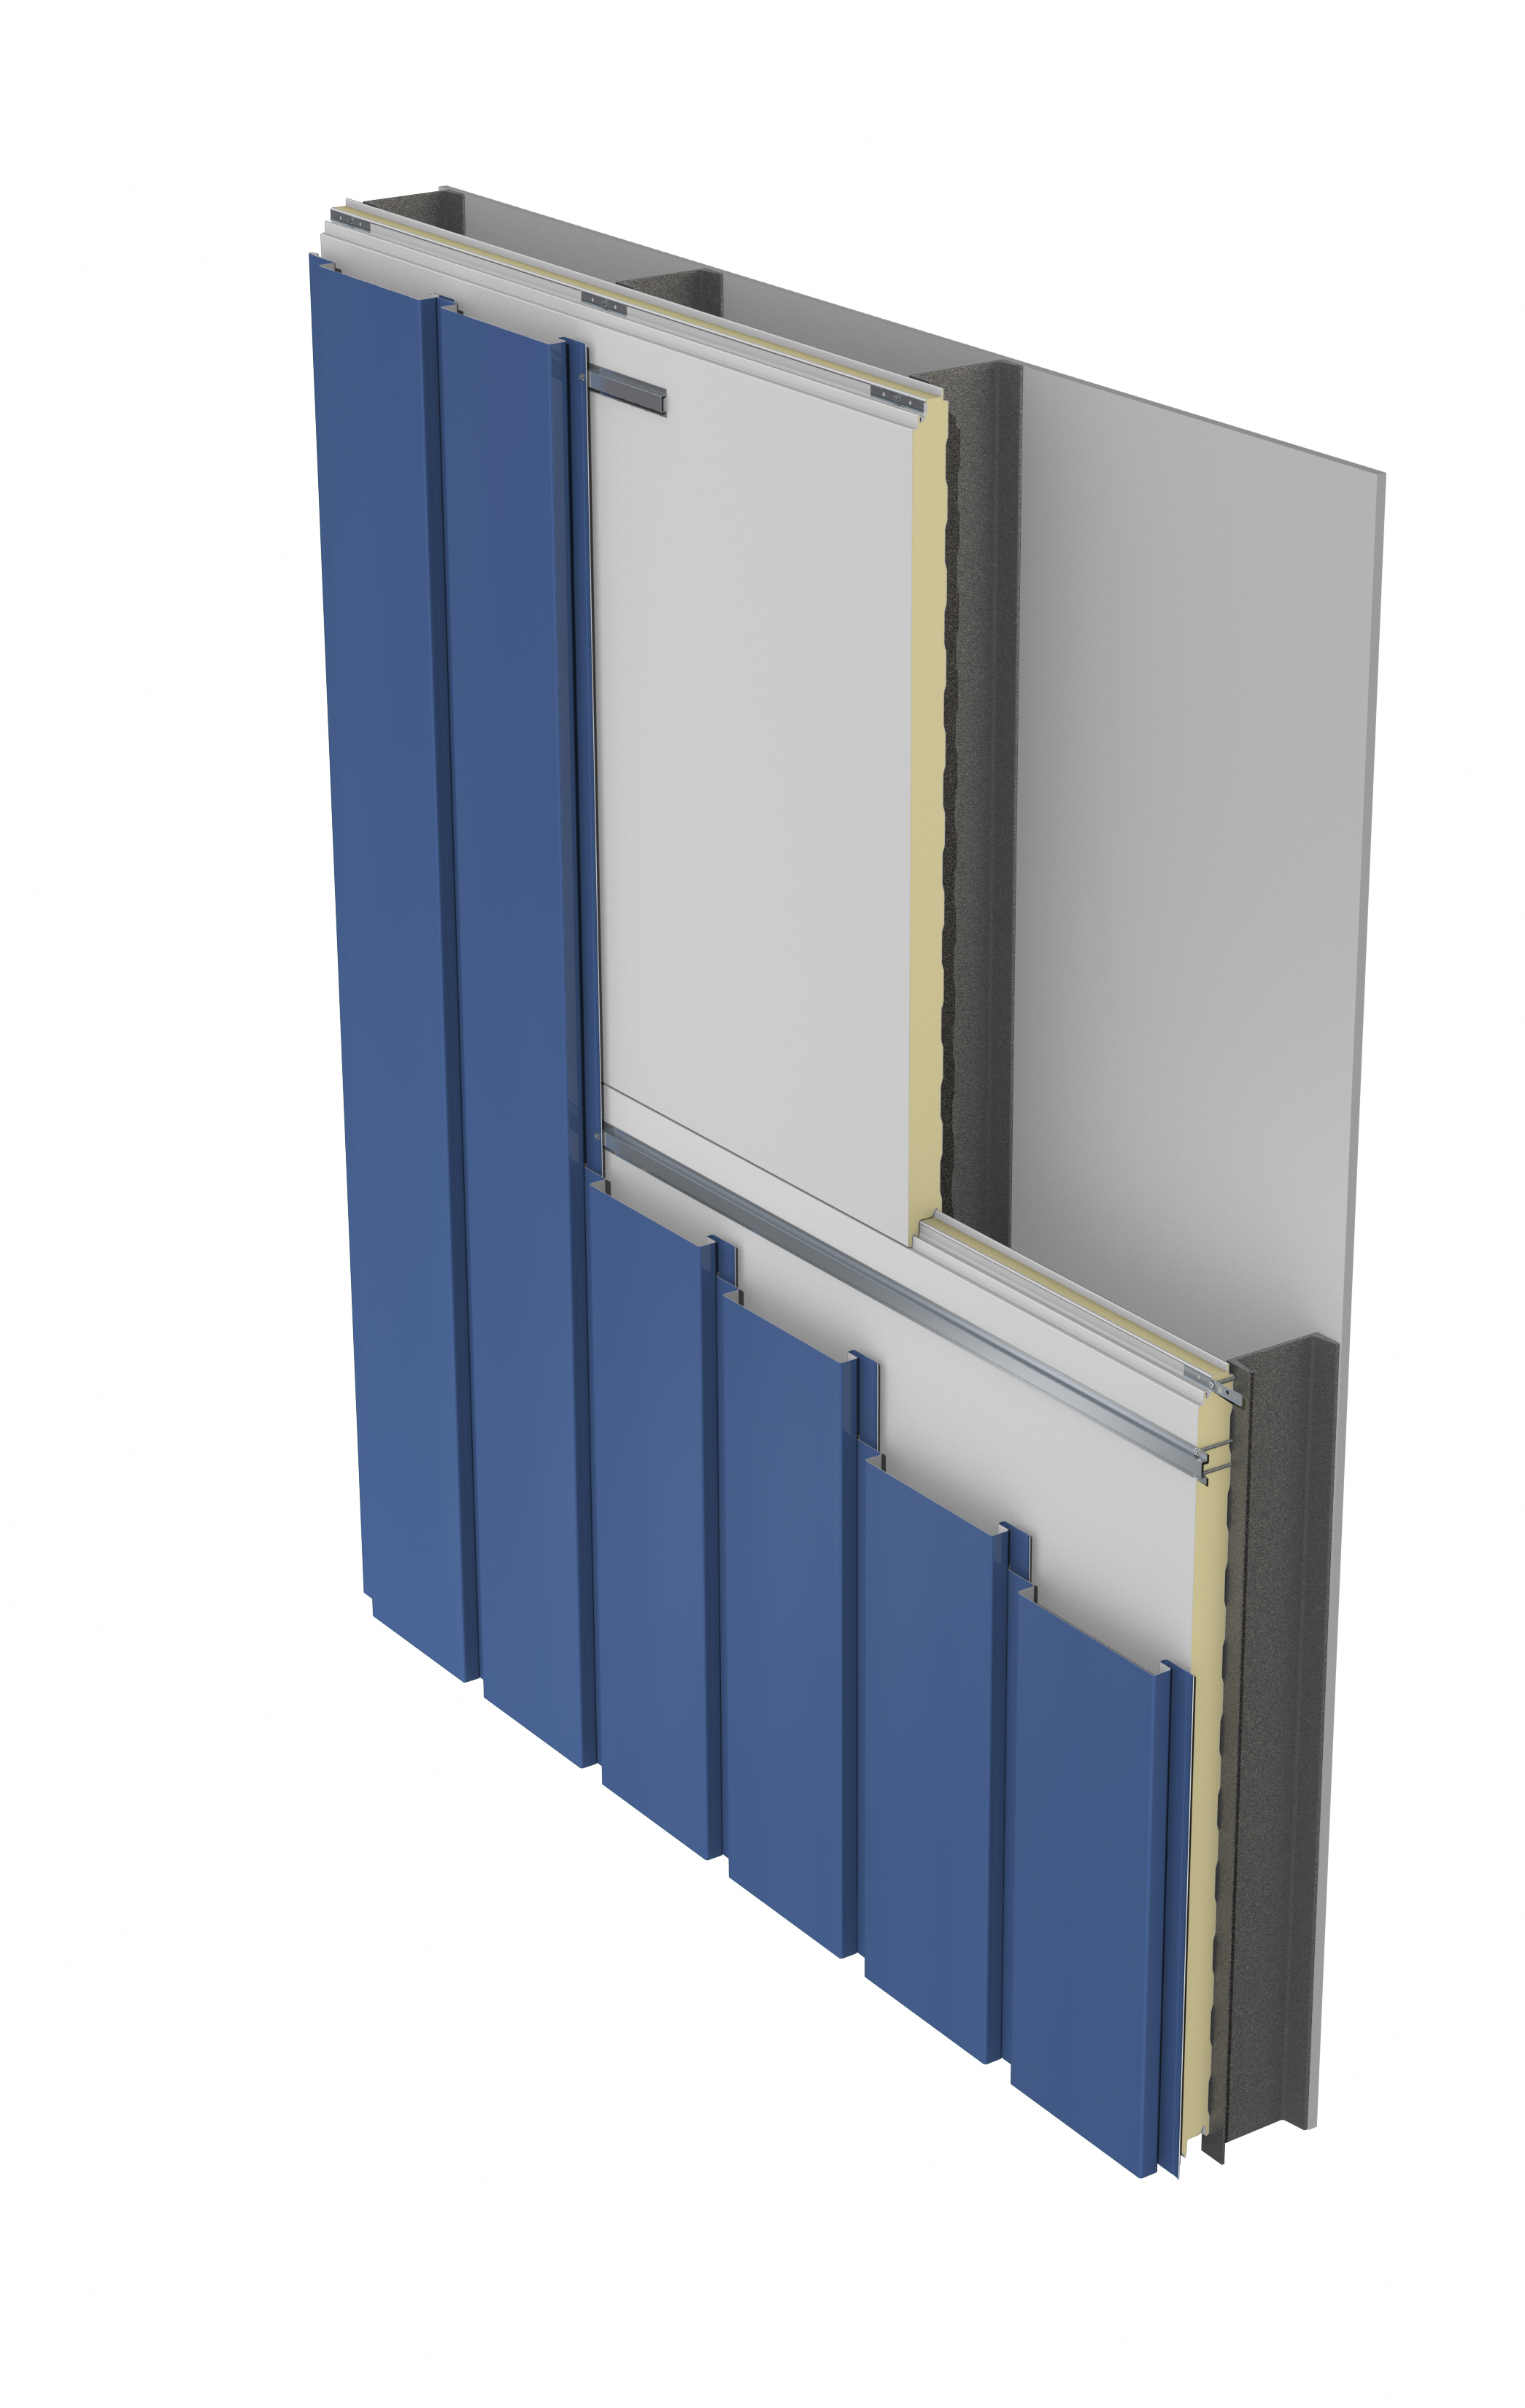 Hpci Insulated Metal Panel For Construction From Metl Span